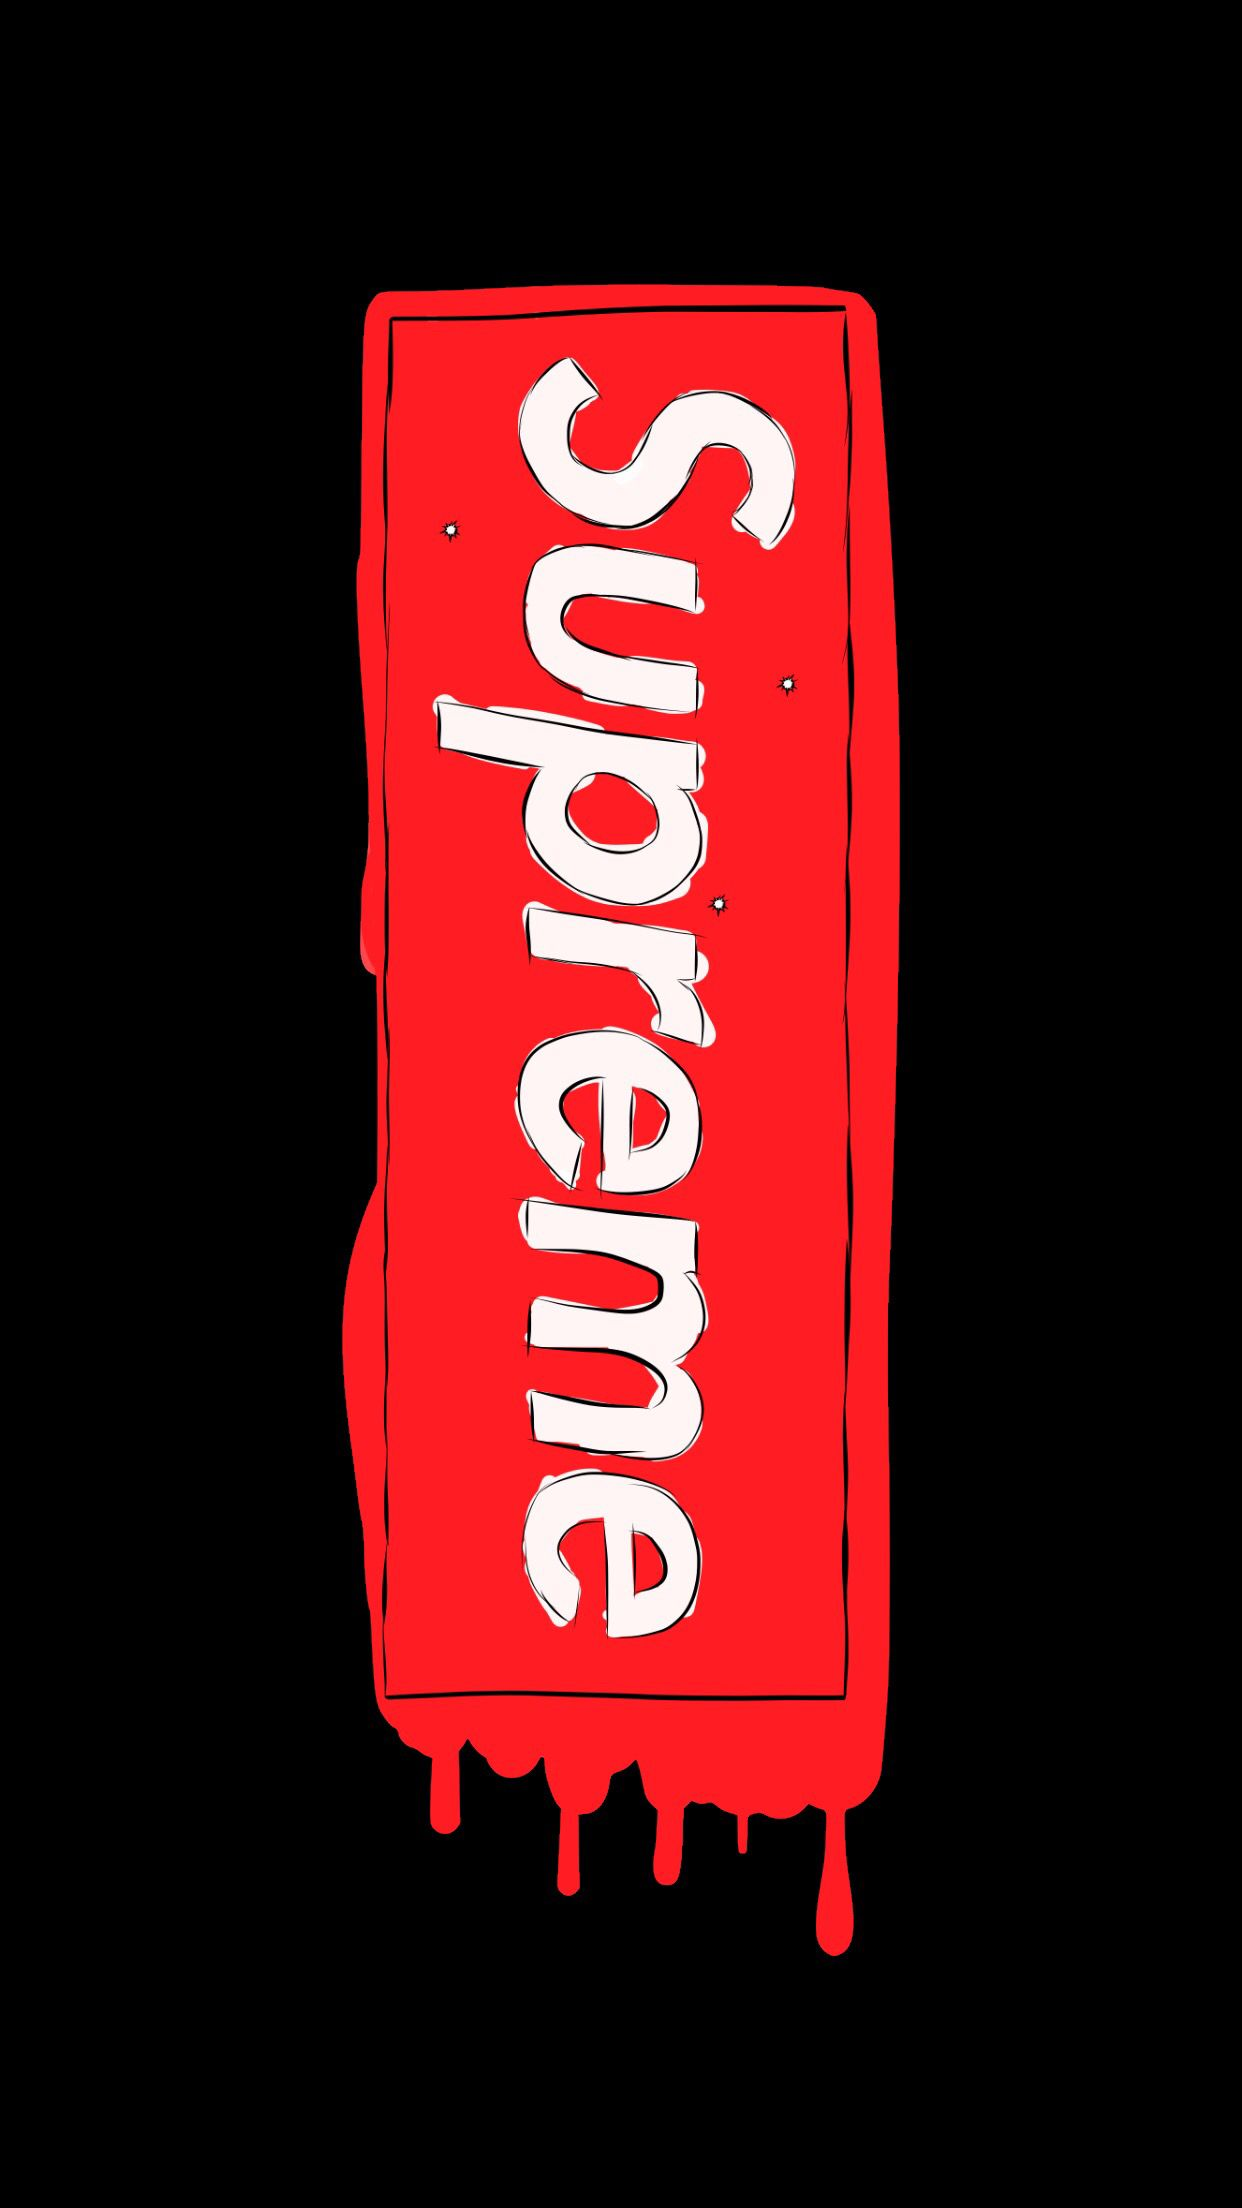 Supreme Wallpaper In 2019 Supreme Wallpaper Supreme